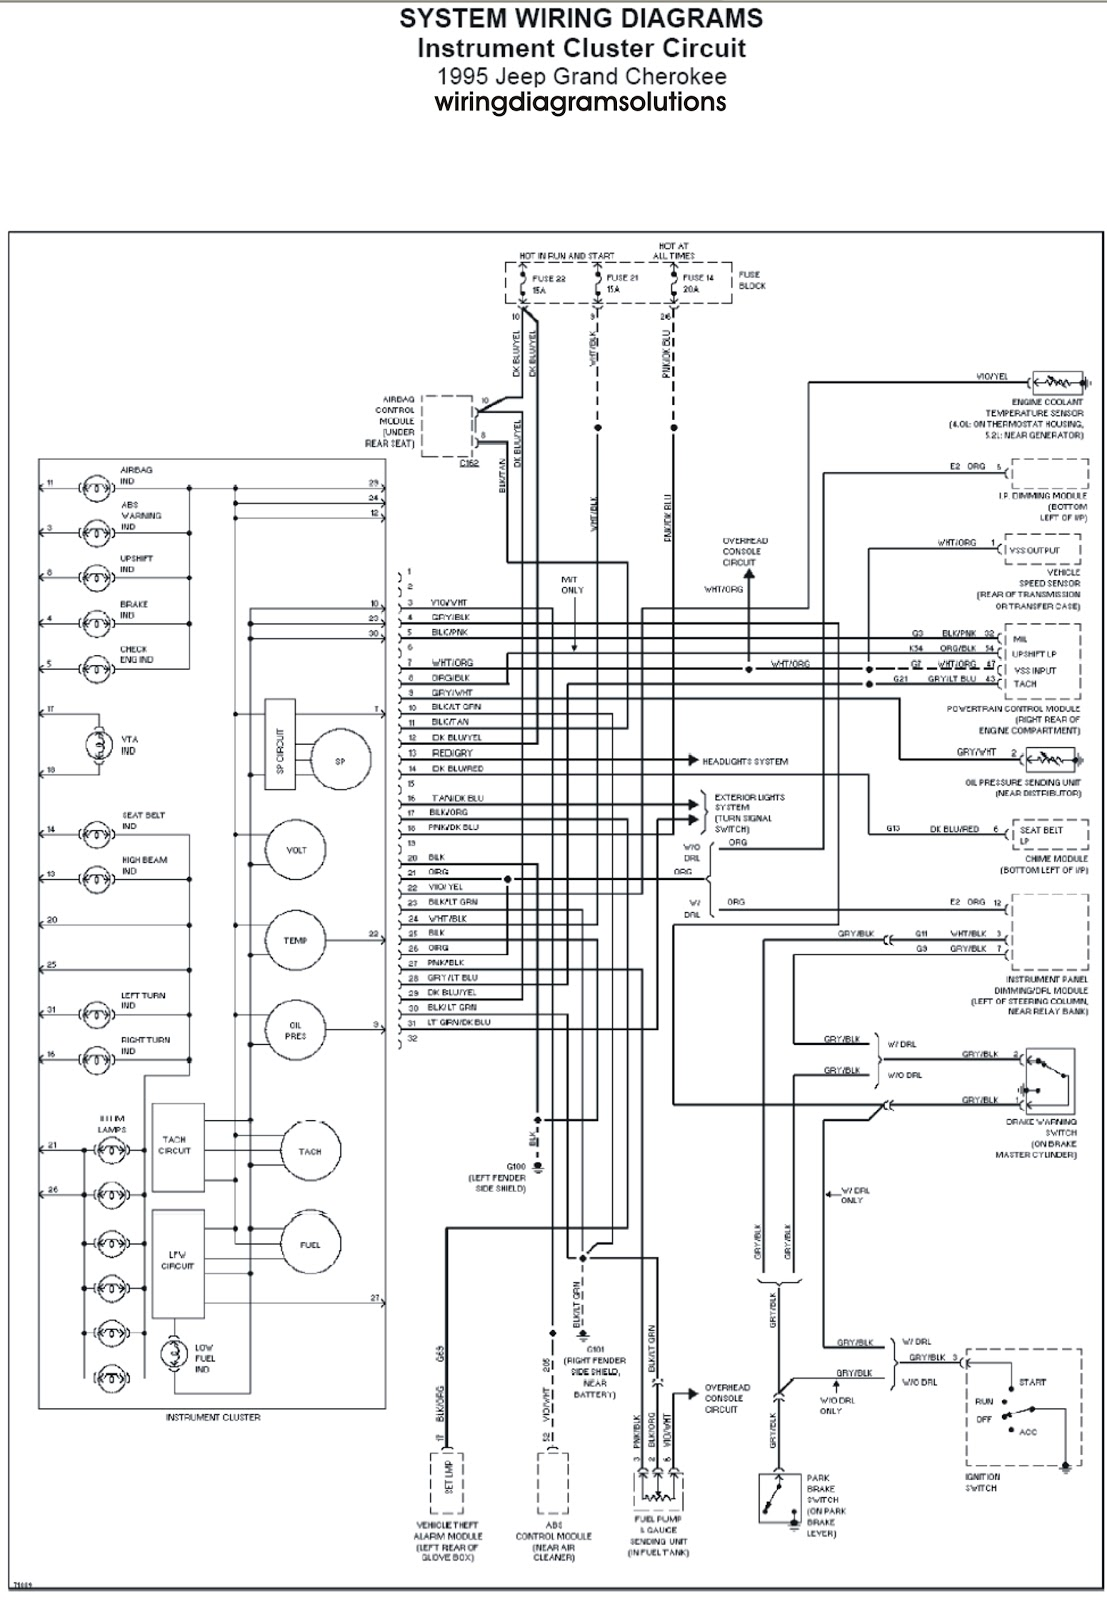 DIAGRAM] Bmw E90 Abs Wiring Diagram FULL Version HD Quality Wiring Diagram  - WIRING-DIAGRAM.FIMENOR.FRDiagram Database